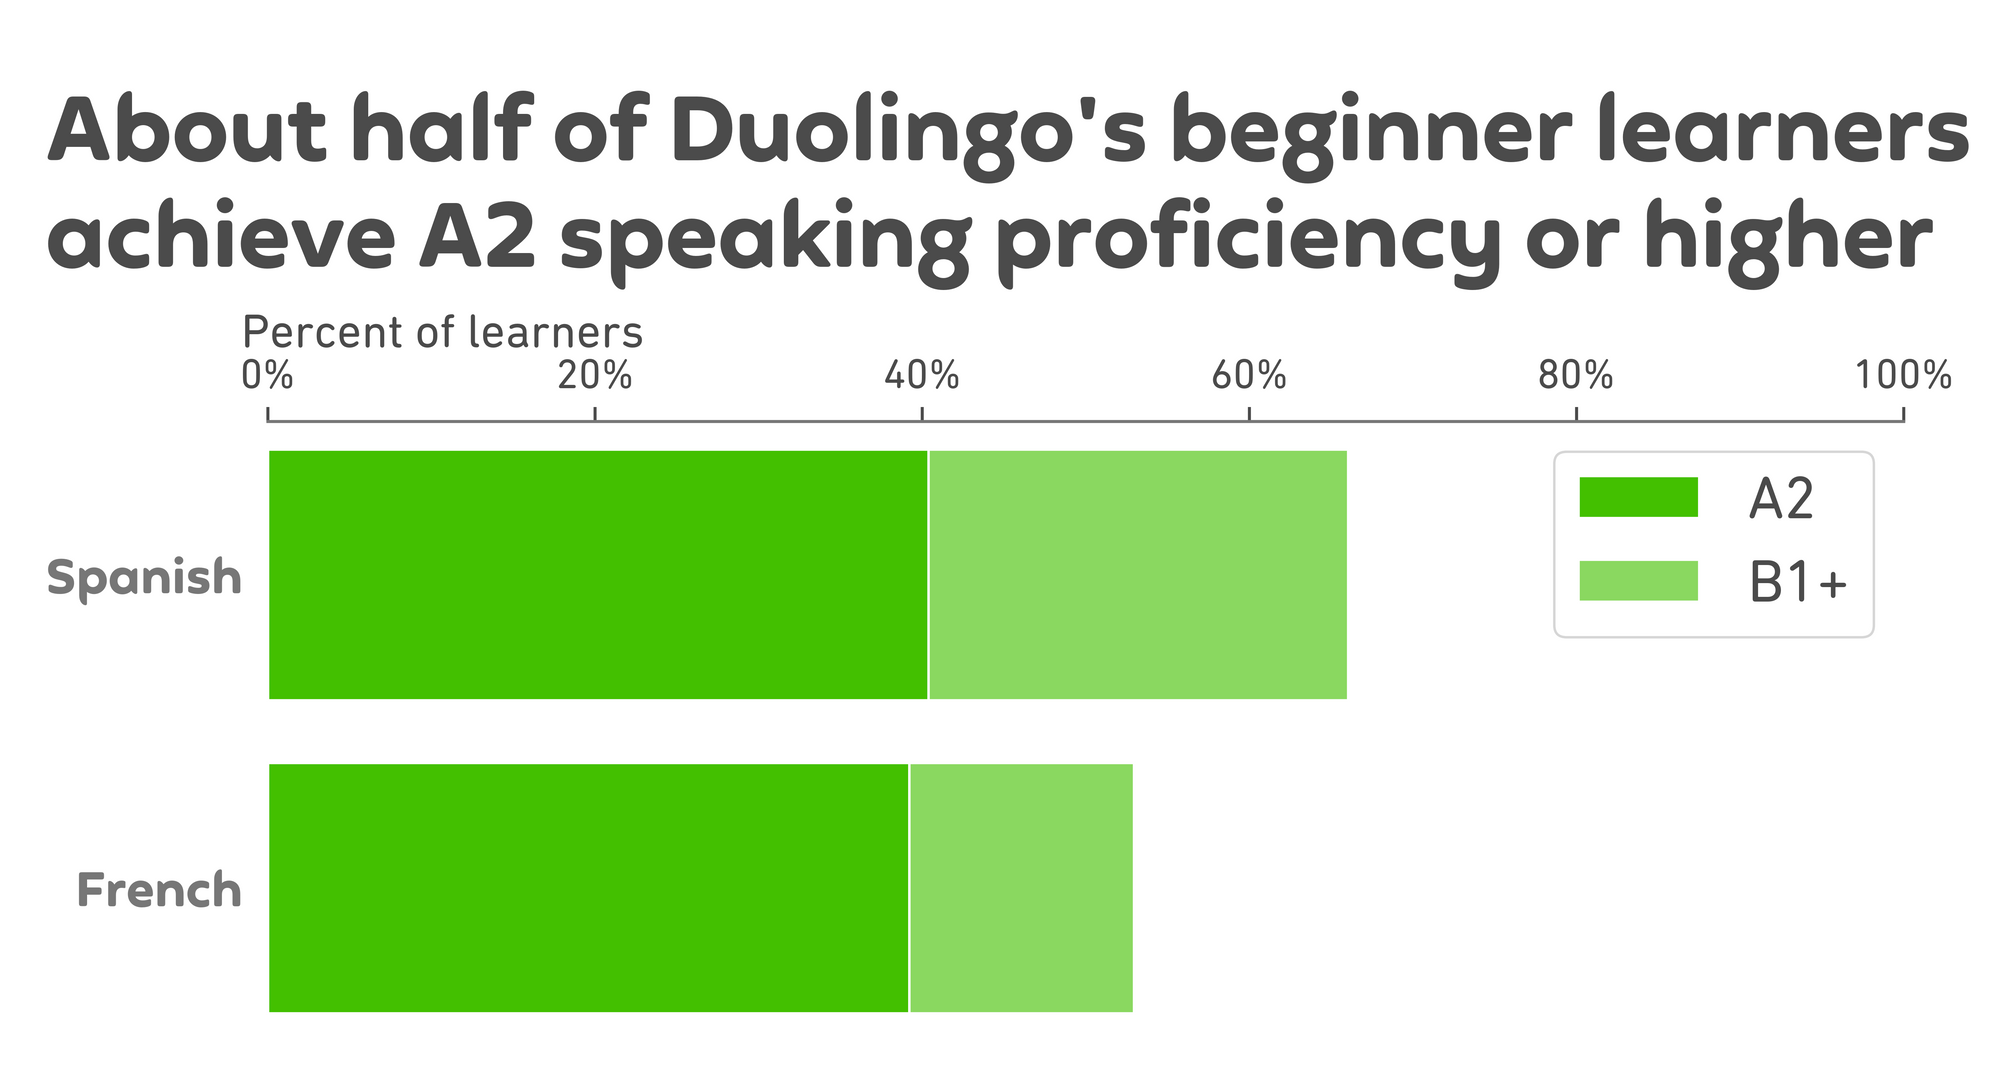 """Graph of results. The graph title is """"About half of Duolingo's beginner learners achieve A2 speaking proficiency or higher."""" Below the title are two horizontal bars, starting at the left and extending right. Each bar is divided into a dark green section on the left and a light green section on the right. The x-axis is the percent of learners, from 0% to 100%. On the y-axis, the top bar is labeled Spanish and the bottom French. For Spanish, a dark green bar starts at 0% and extends to about 40%; this is the % of learners who achieved A2. Then the bar continues to the right and is lighter green: it extends to about 65% and is for learners who achieved B1 or higher. For French, the dark green bar starts at 0% and extends to about 40% for the learners who achieved A2. Then the lighter green bar continues from 40% to about 52%, for learners who achieved B1 or higher."""